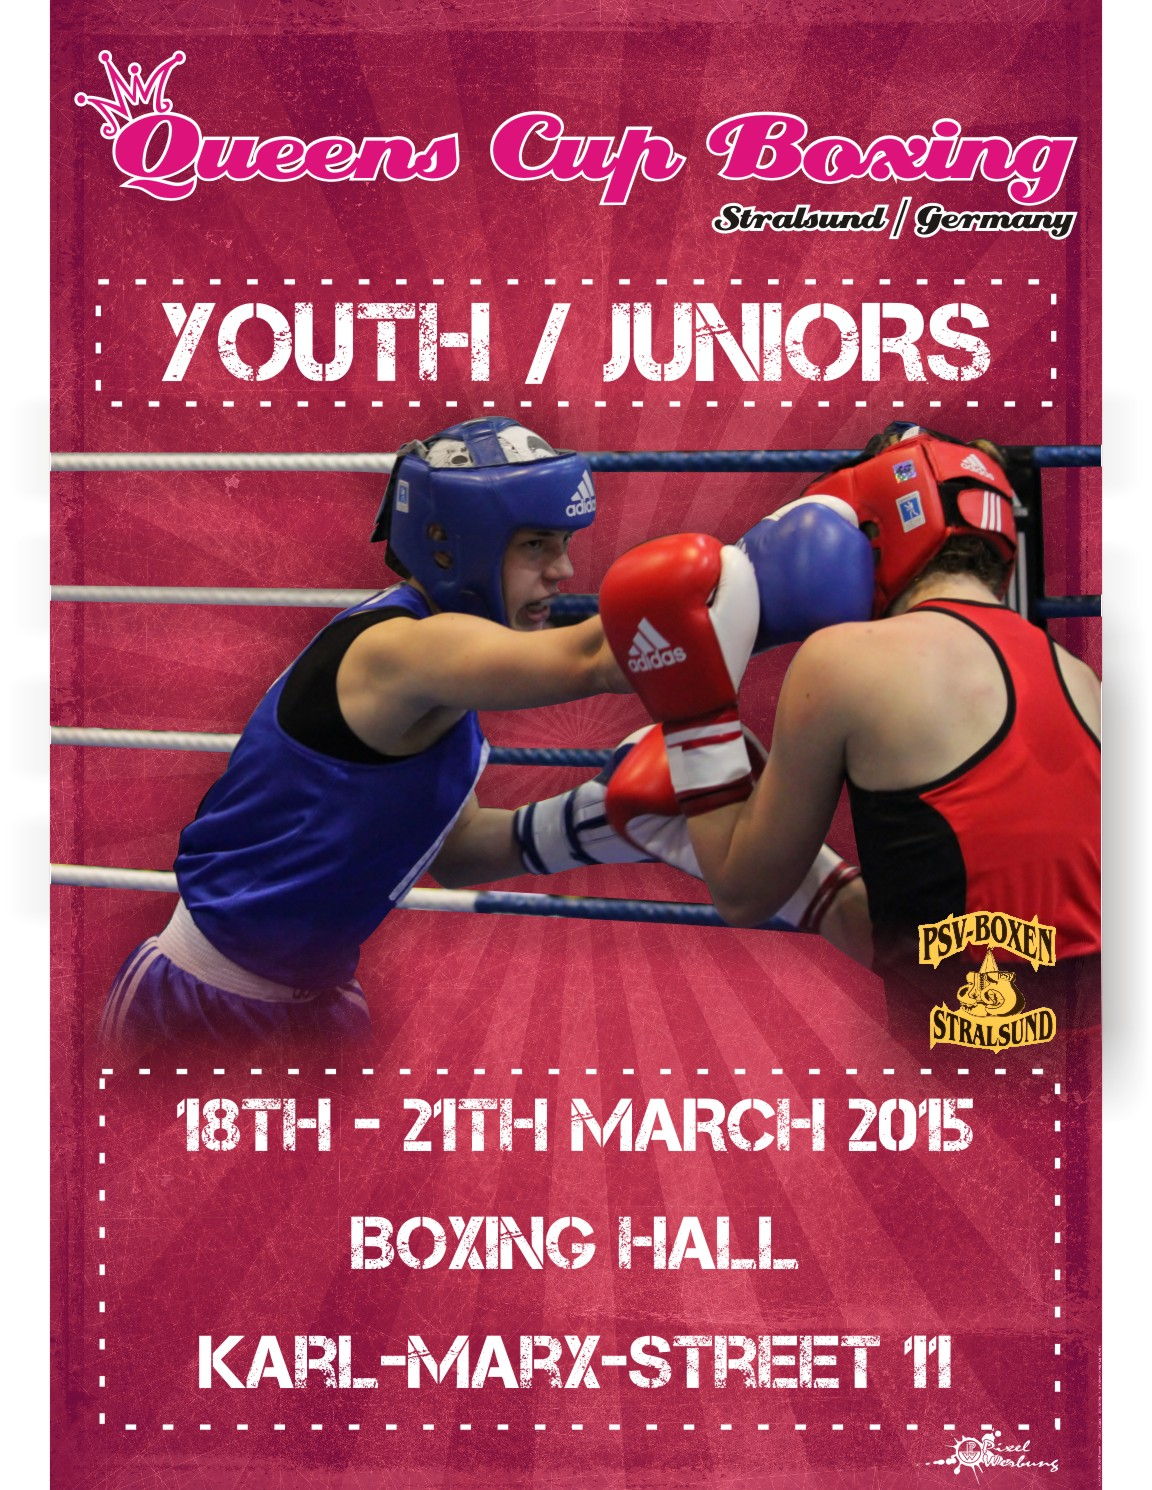 QUEENS CUP BOXING 2015